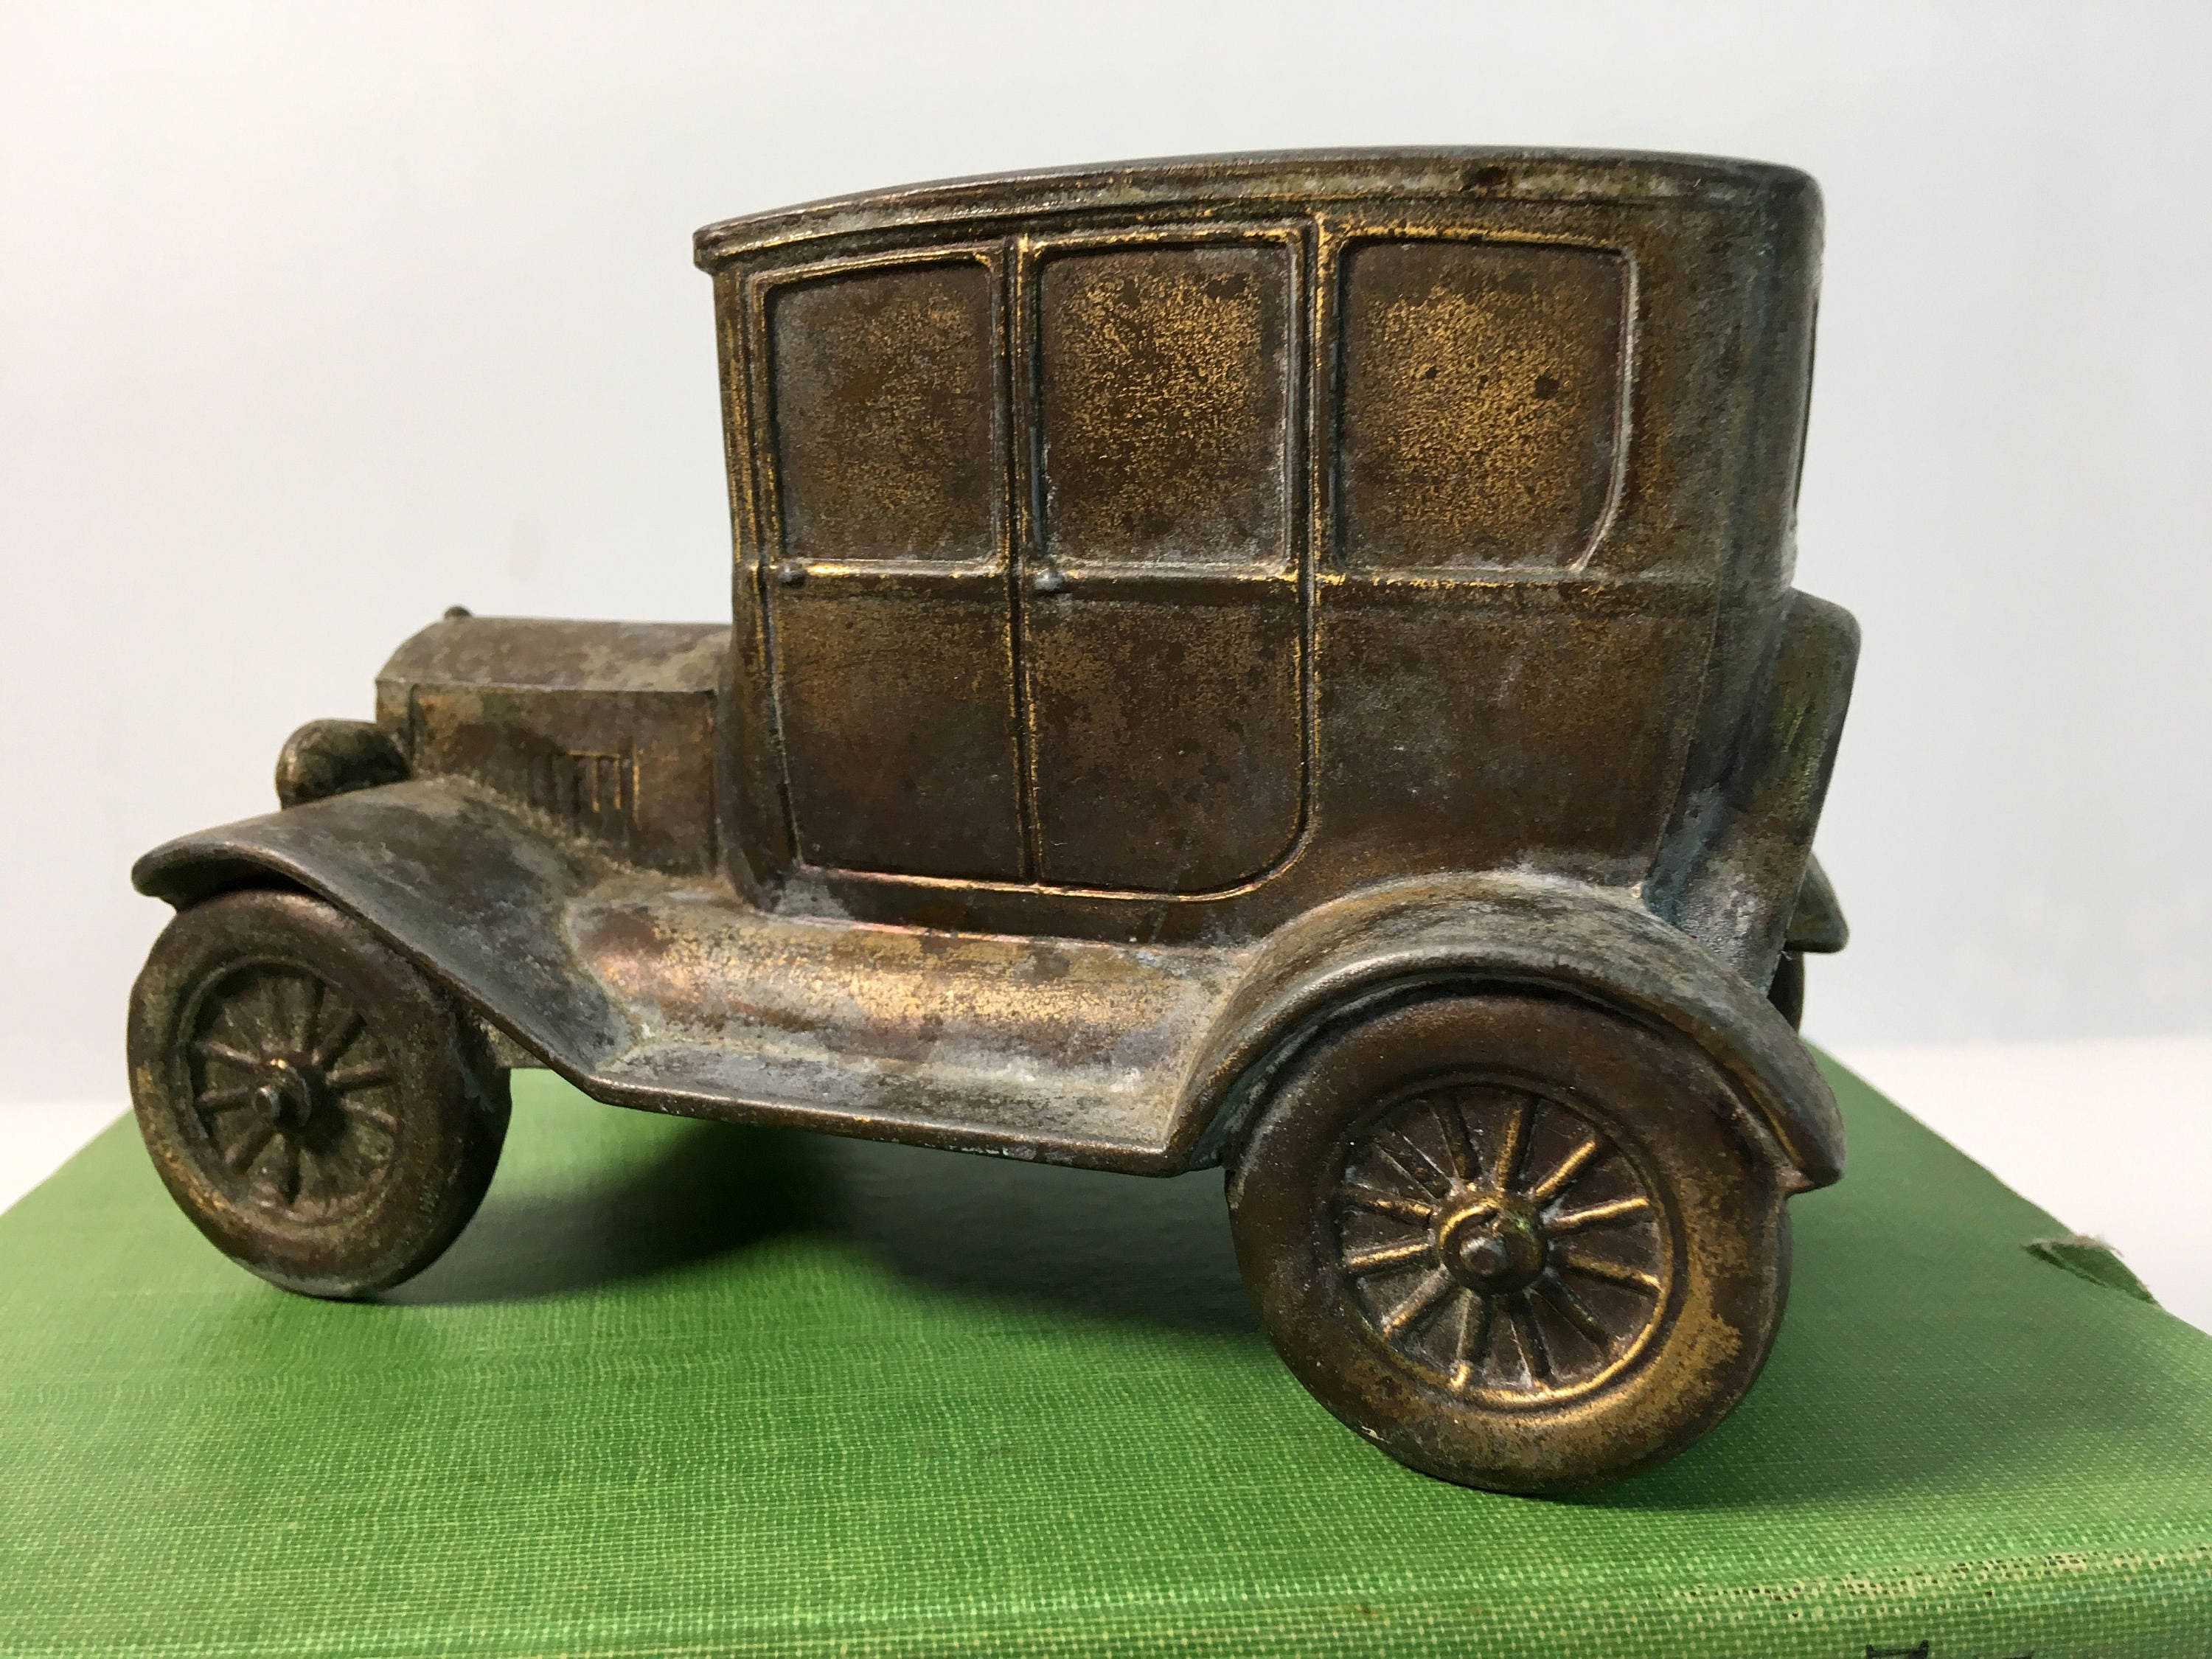 Vintage Brass Ford Car Bank - Retro Collectible Brass Bank Ad for a ...